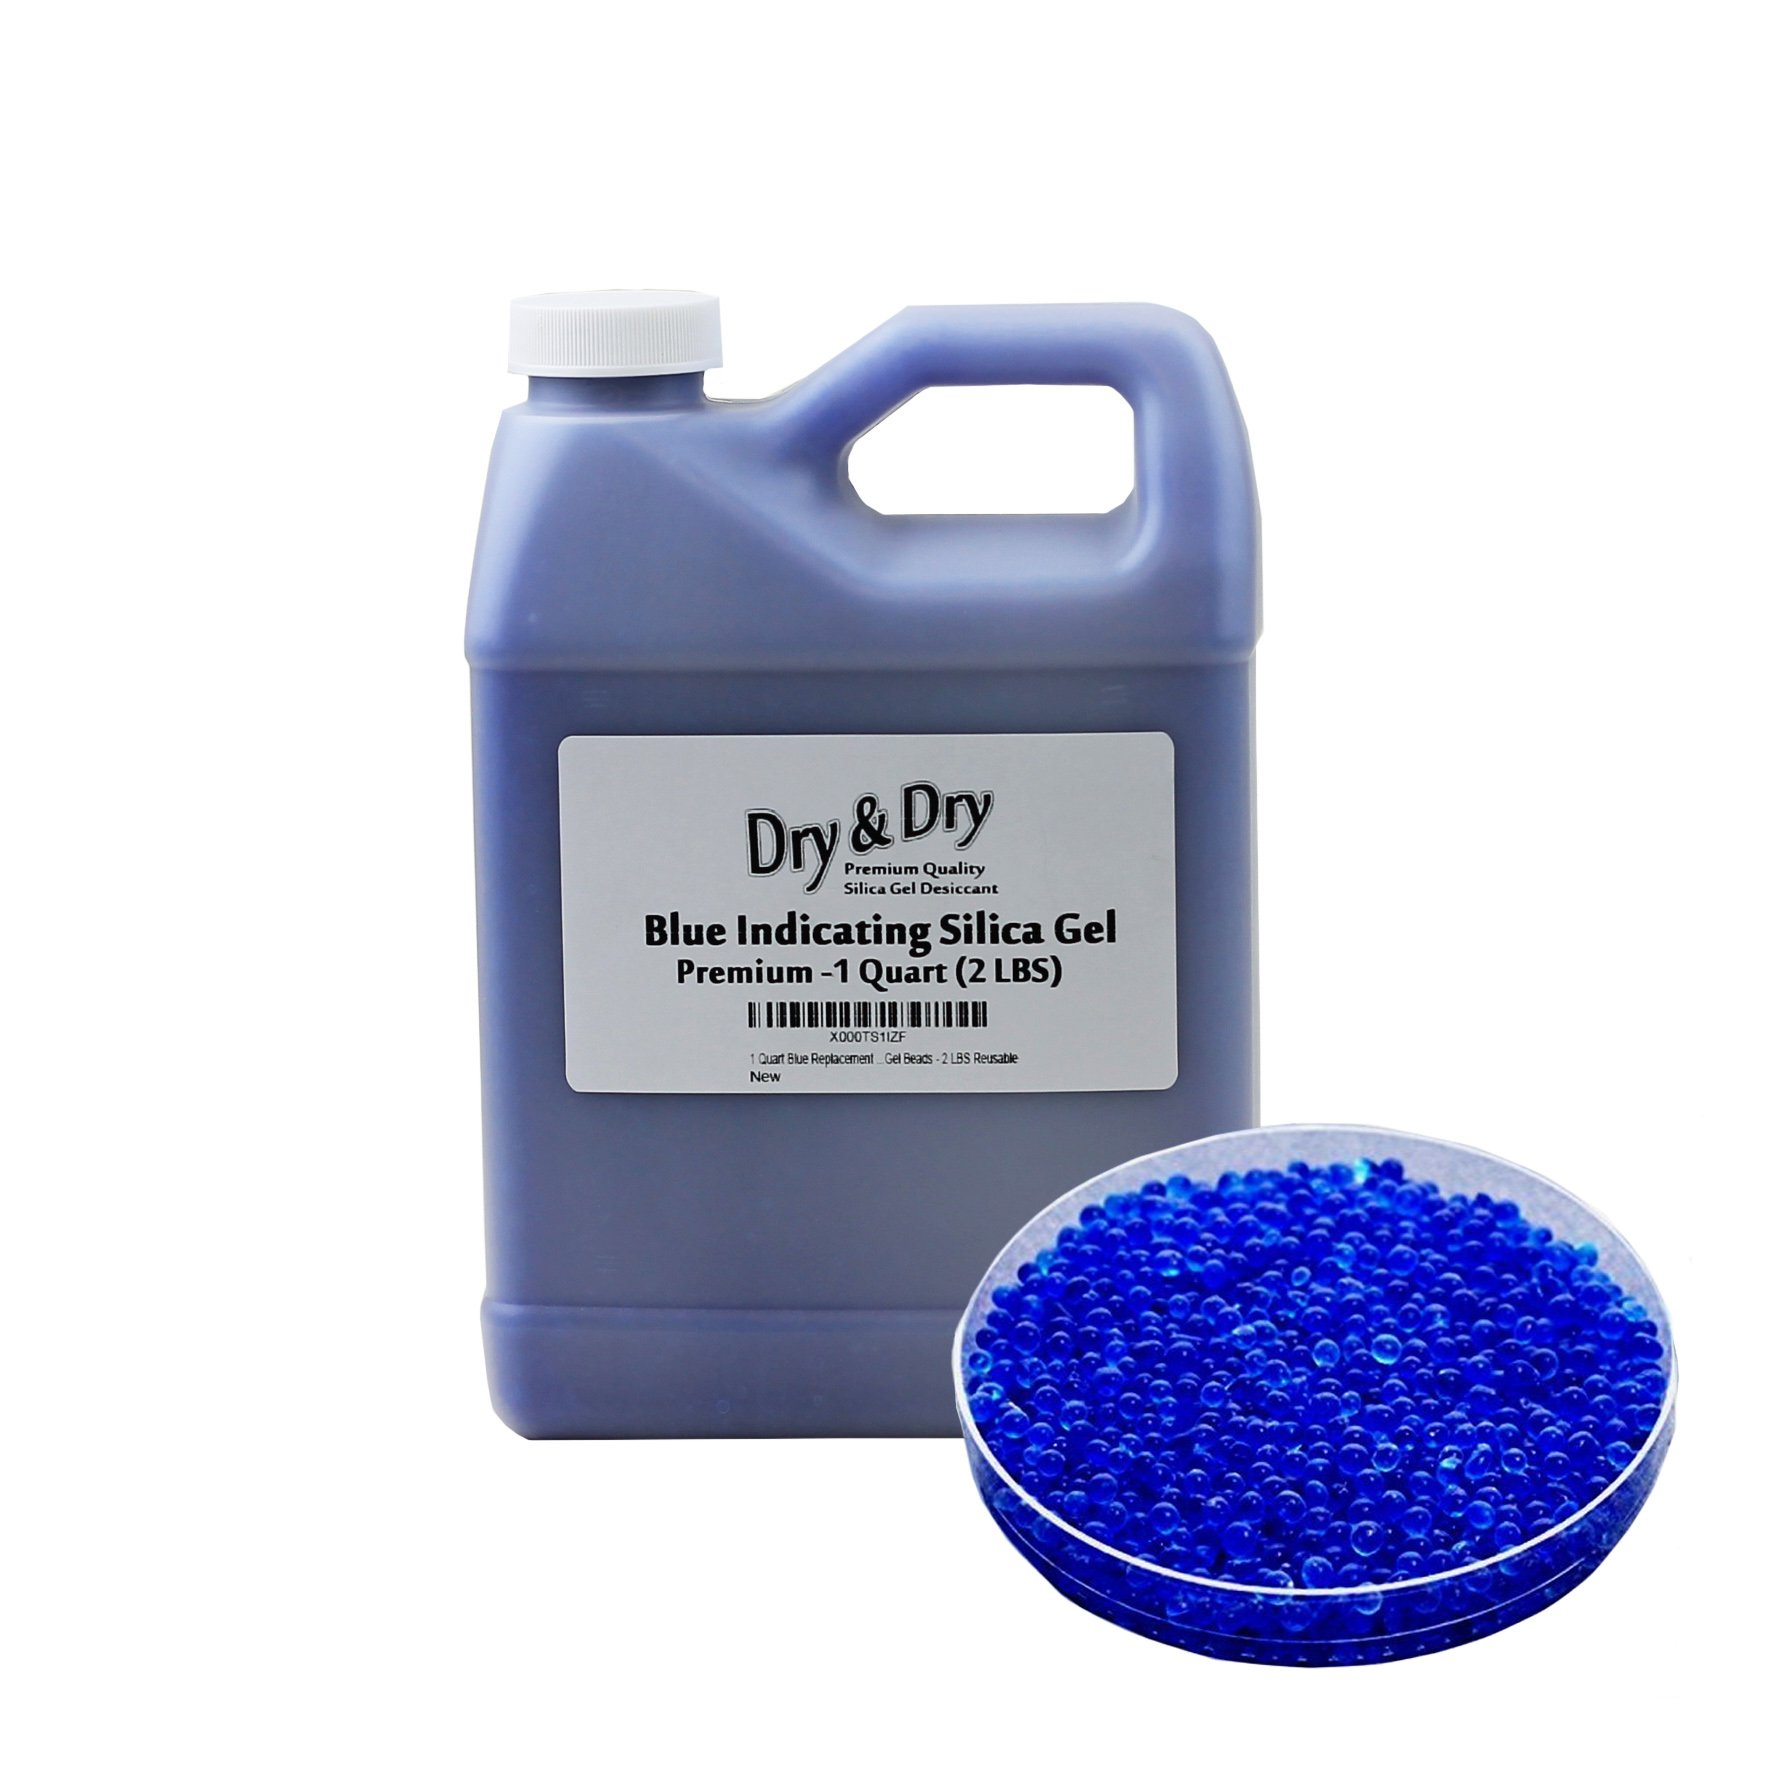 Dry & Dry [2 LBS] Blue Premium Indicating Silica Gel Beads(Industry Standard 2-4 mm) - Reusable Desiccant Beads